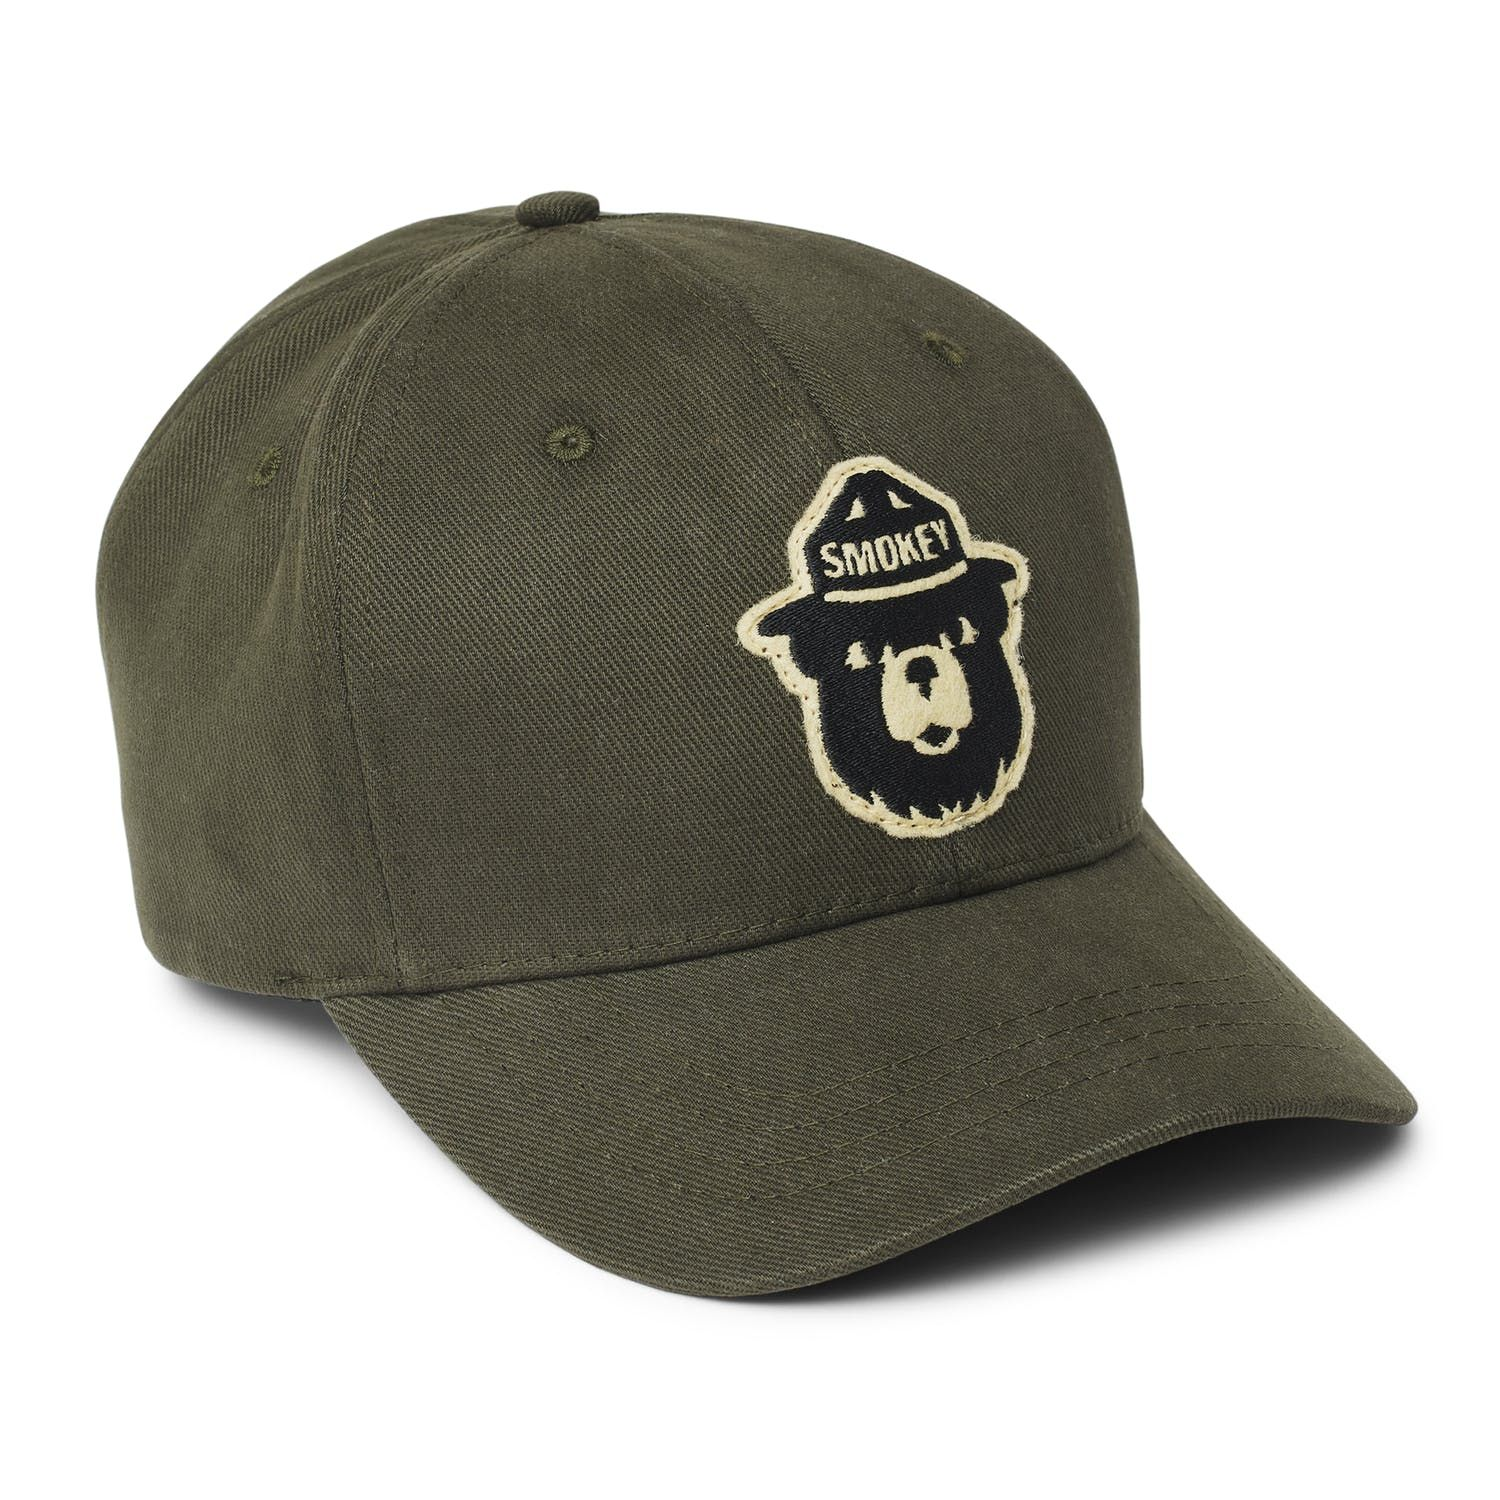 Smokey Bear US Forest Fire Service Trucker Hat Only You Vintage Green Patch Cap